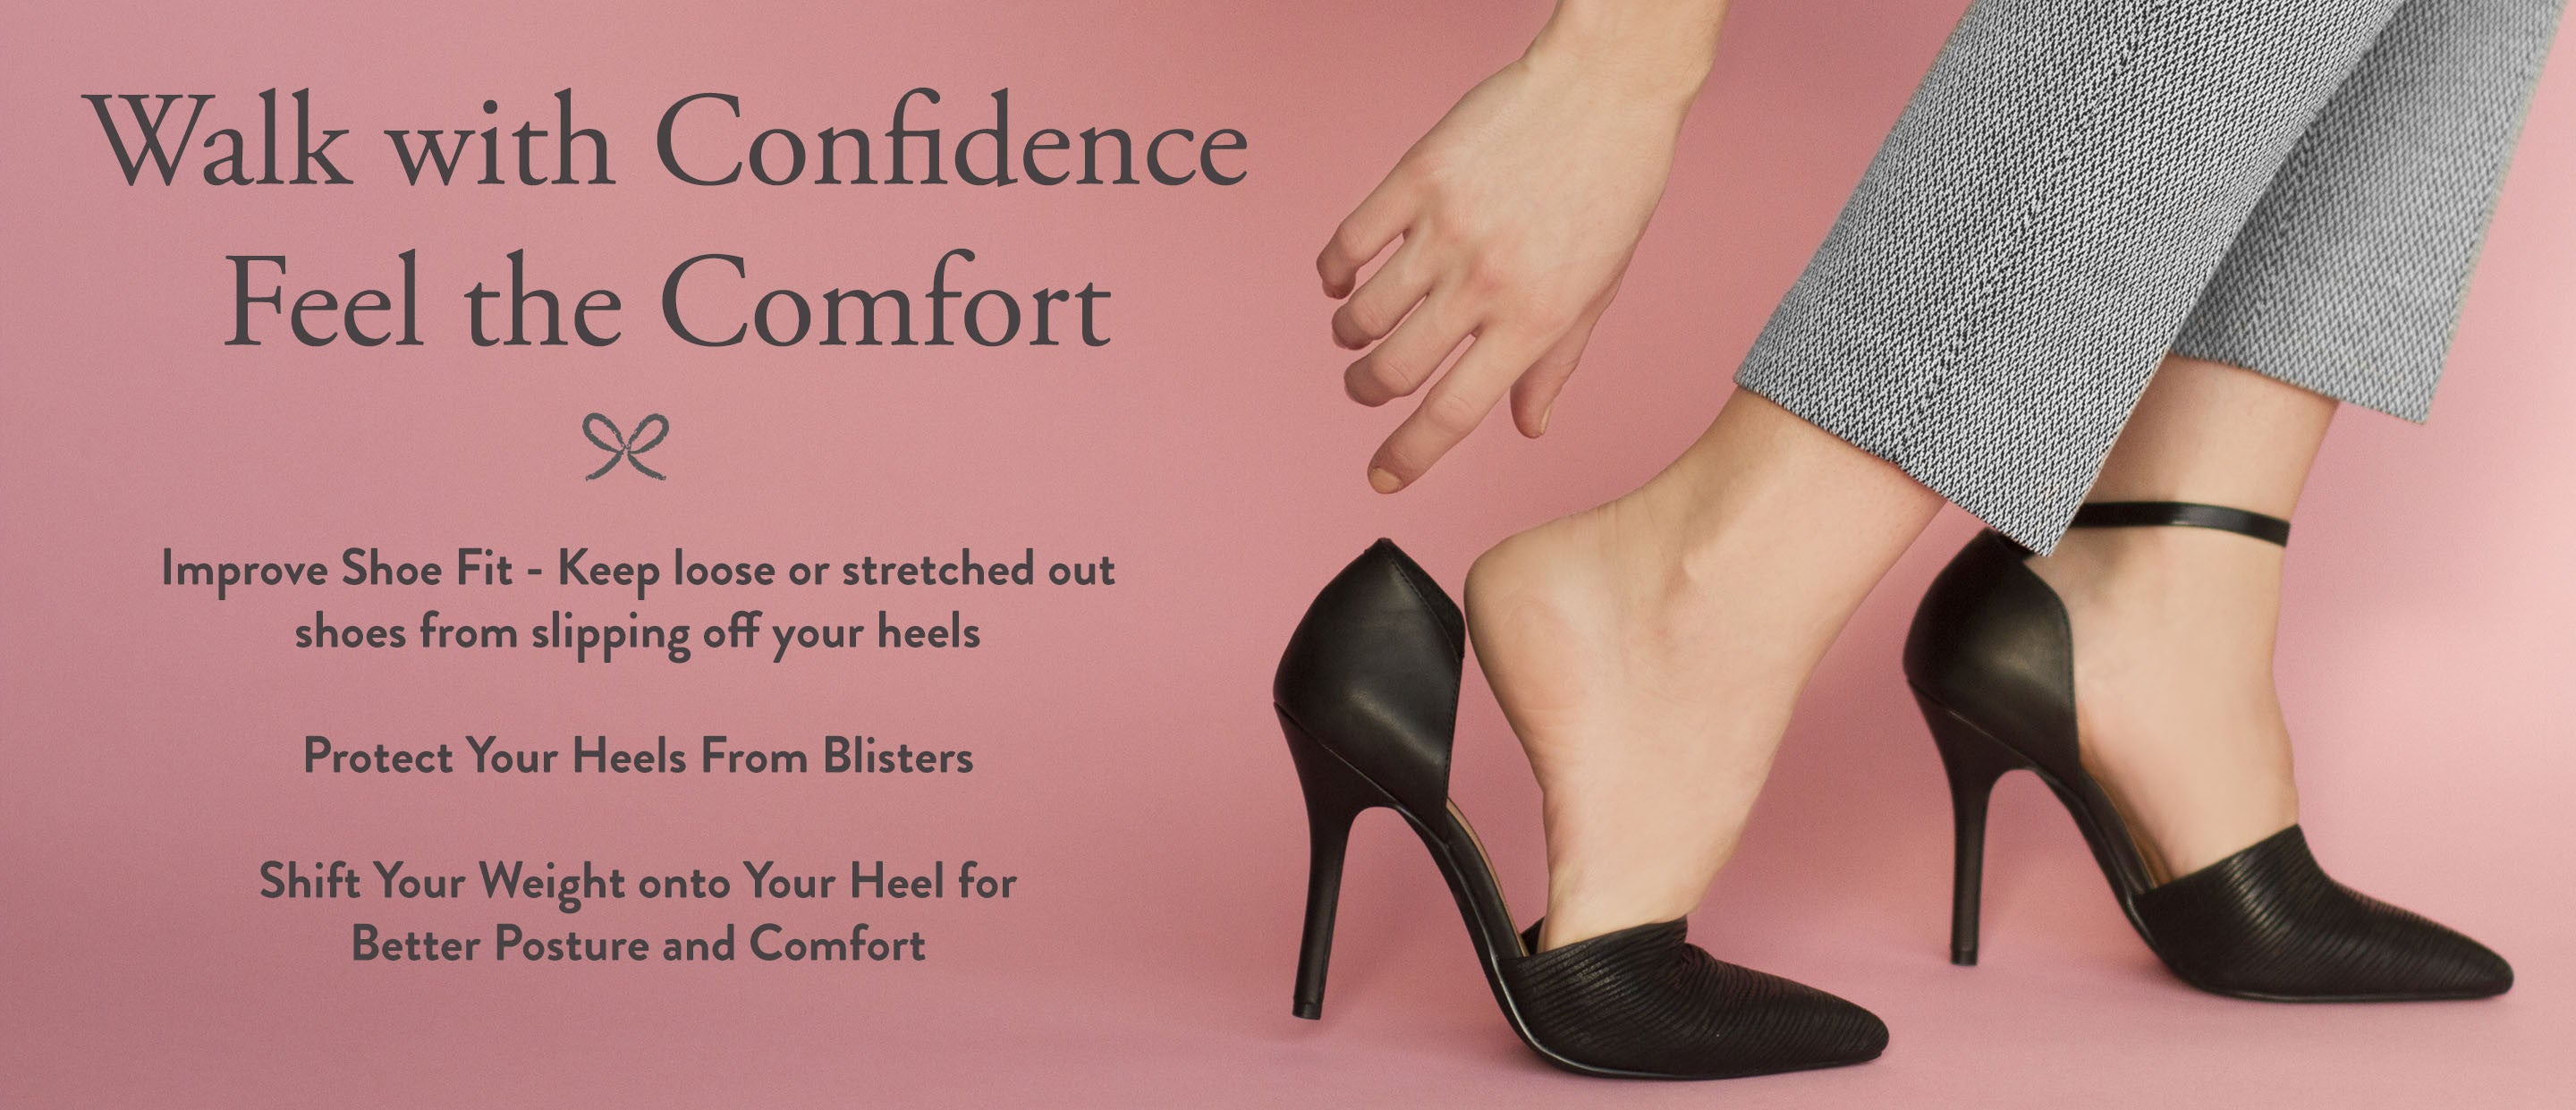 Attachable ankle straps Improve Shoe Fit - Keep loose or stretched out shoes from slipping off your heels  Protect Your Heels From Blisters, Shift Your Weight onto Your Heel for Better Posture and Comfort